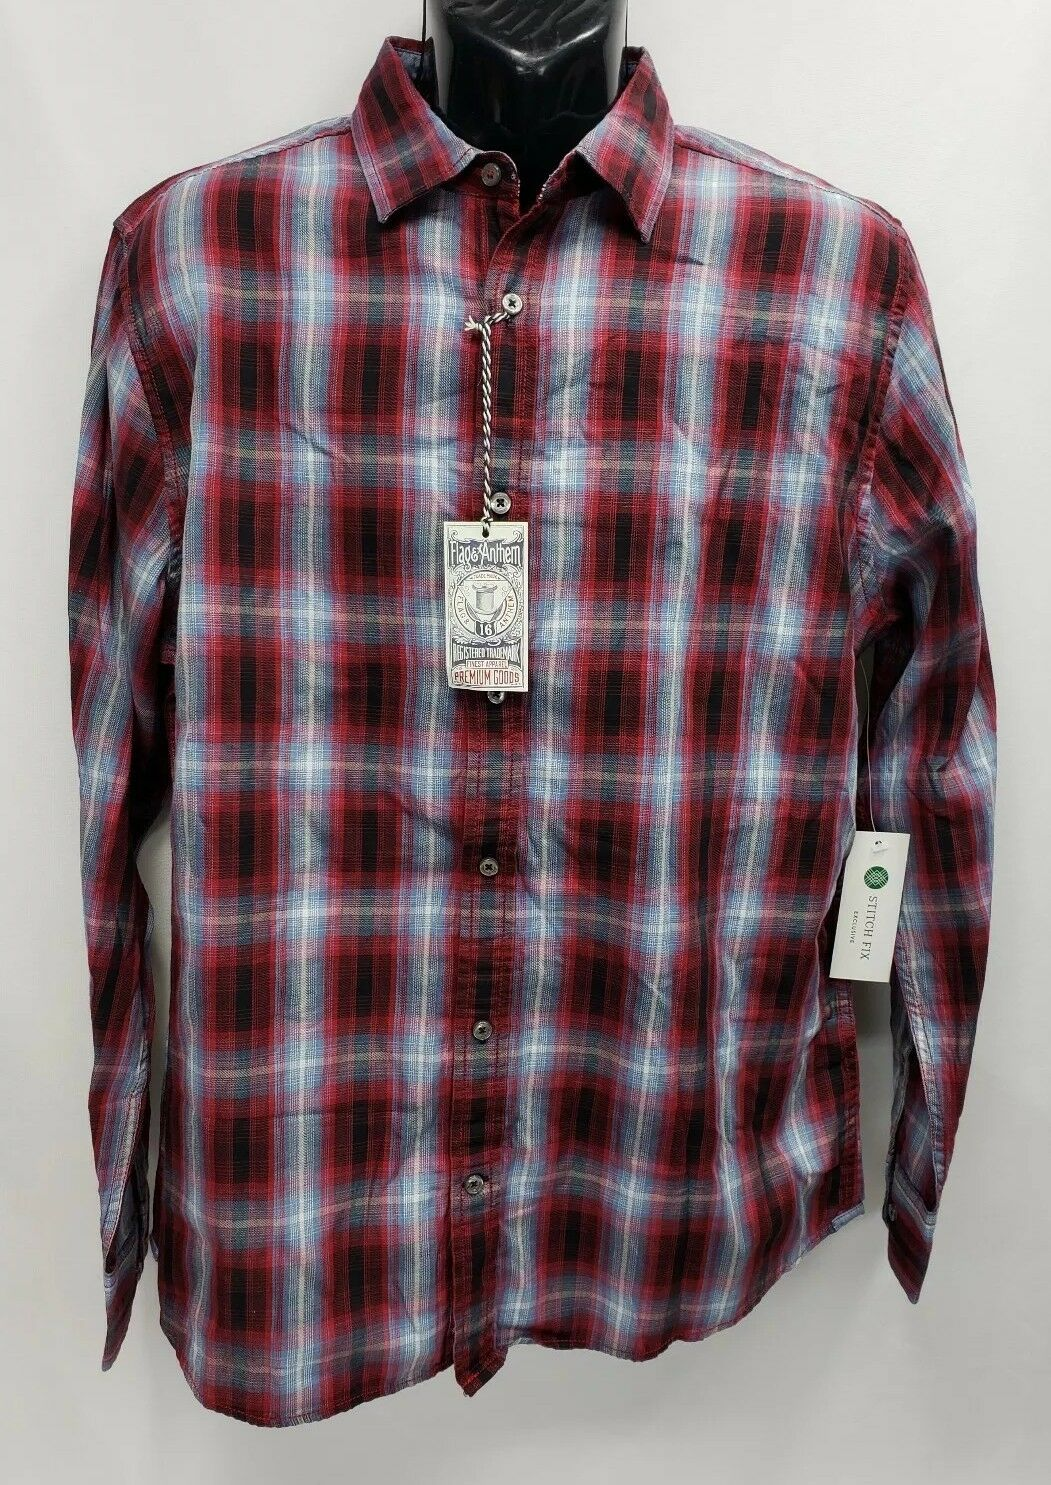 New Men's Flag & Anthem Red Plaid Long Sleeve Oxford Shirt Size L